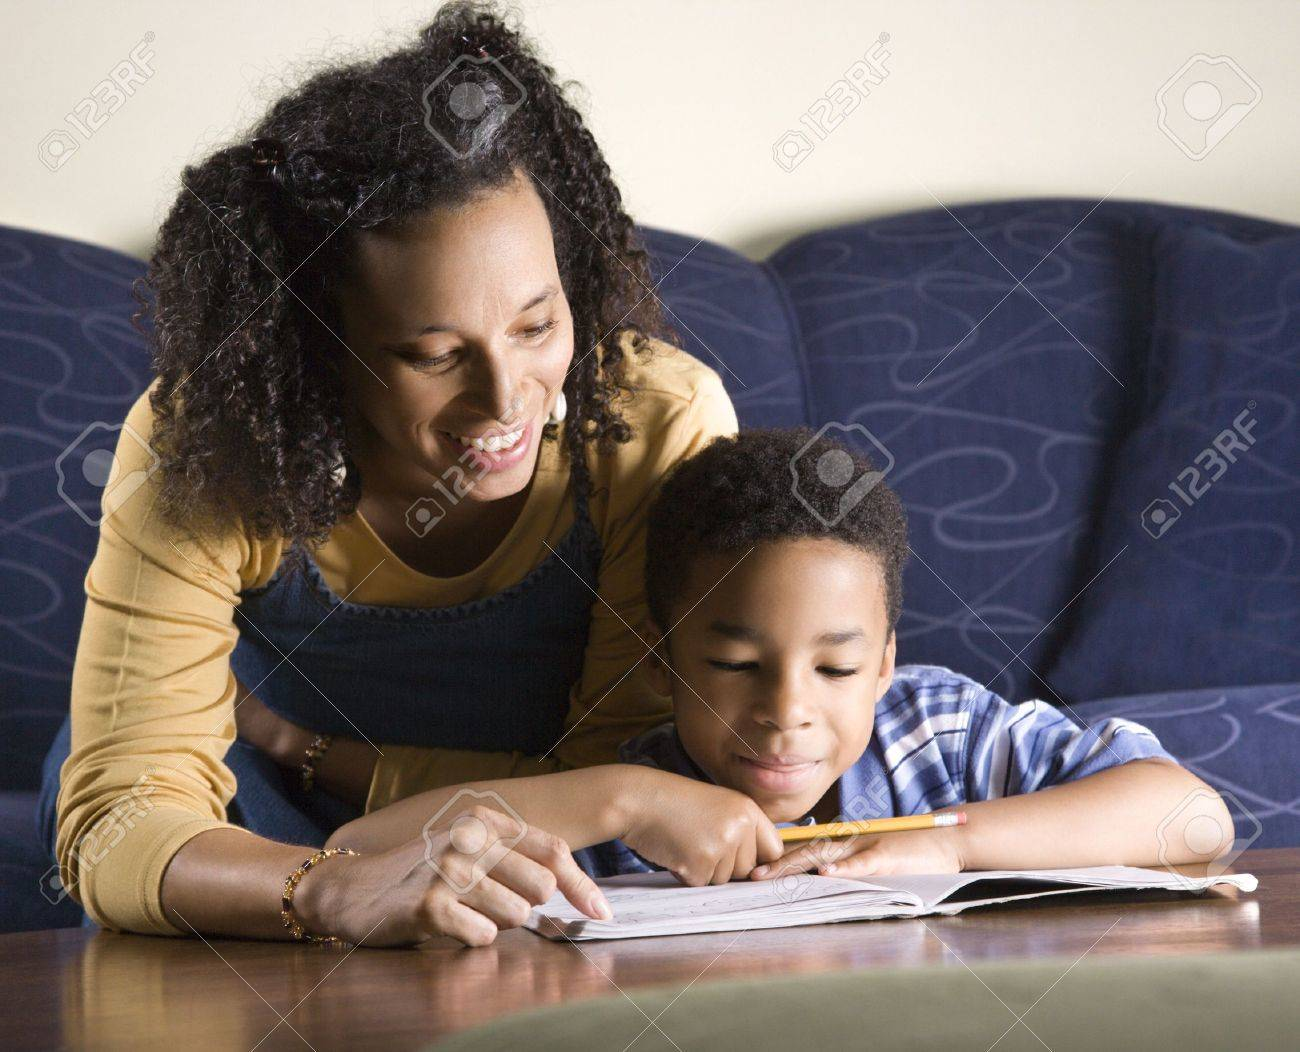 A mid adult African American woman sits on a couch while helping her young some with his homework. Horizontal shot. Stock Photo - 6455370